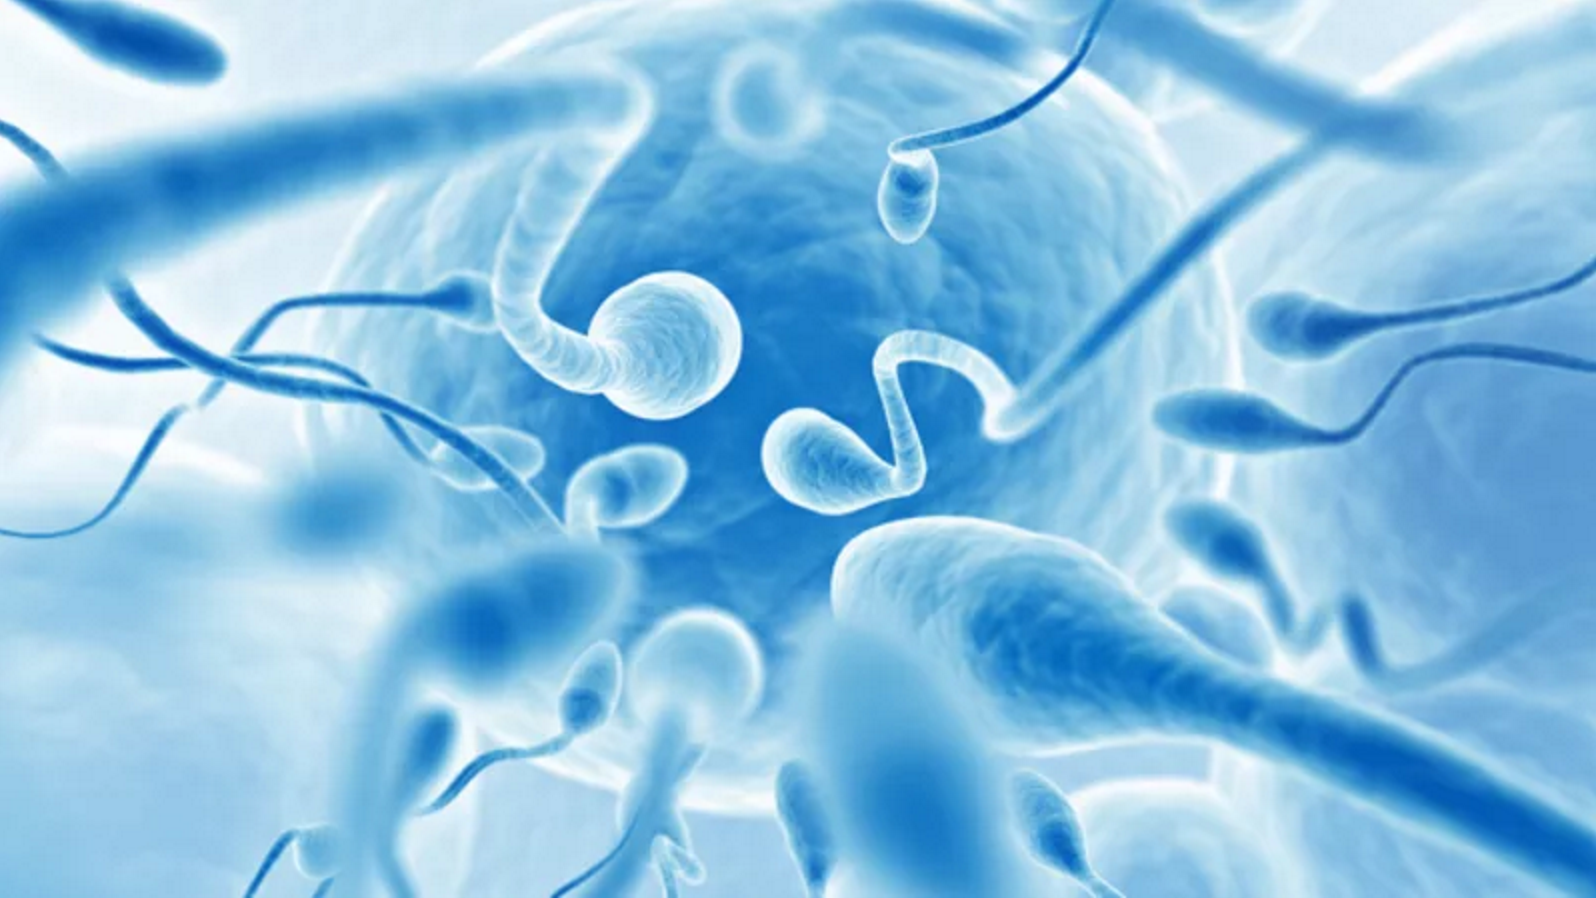 Sperm Counts Have Plummeted Among Western Men, Scientists Confirm